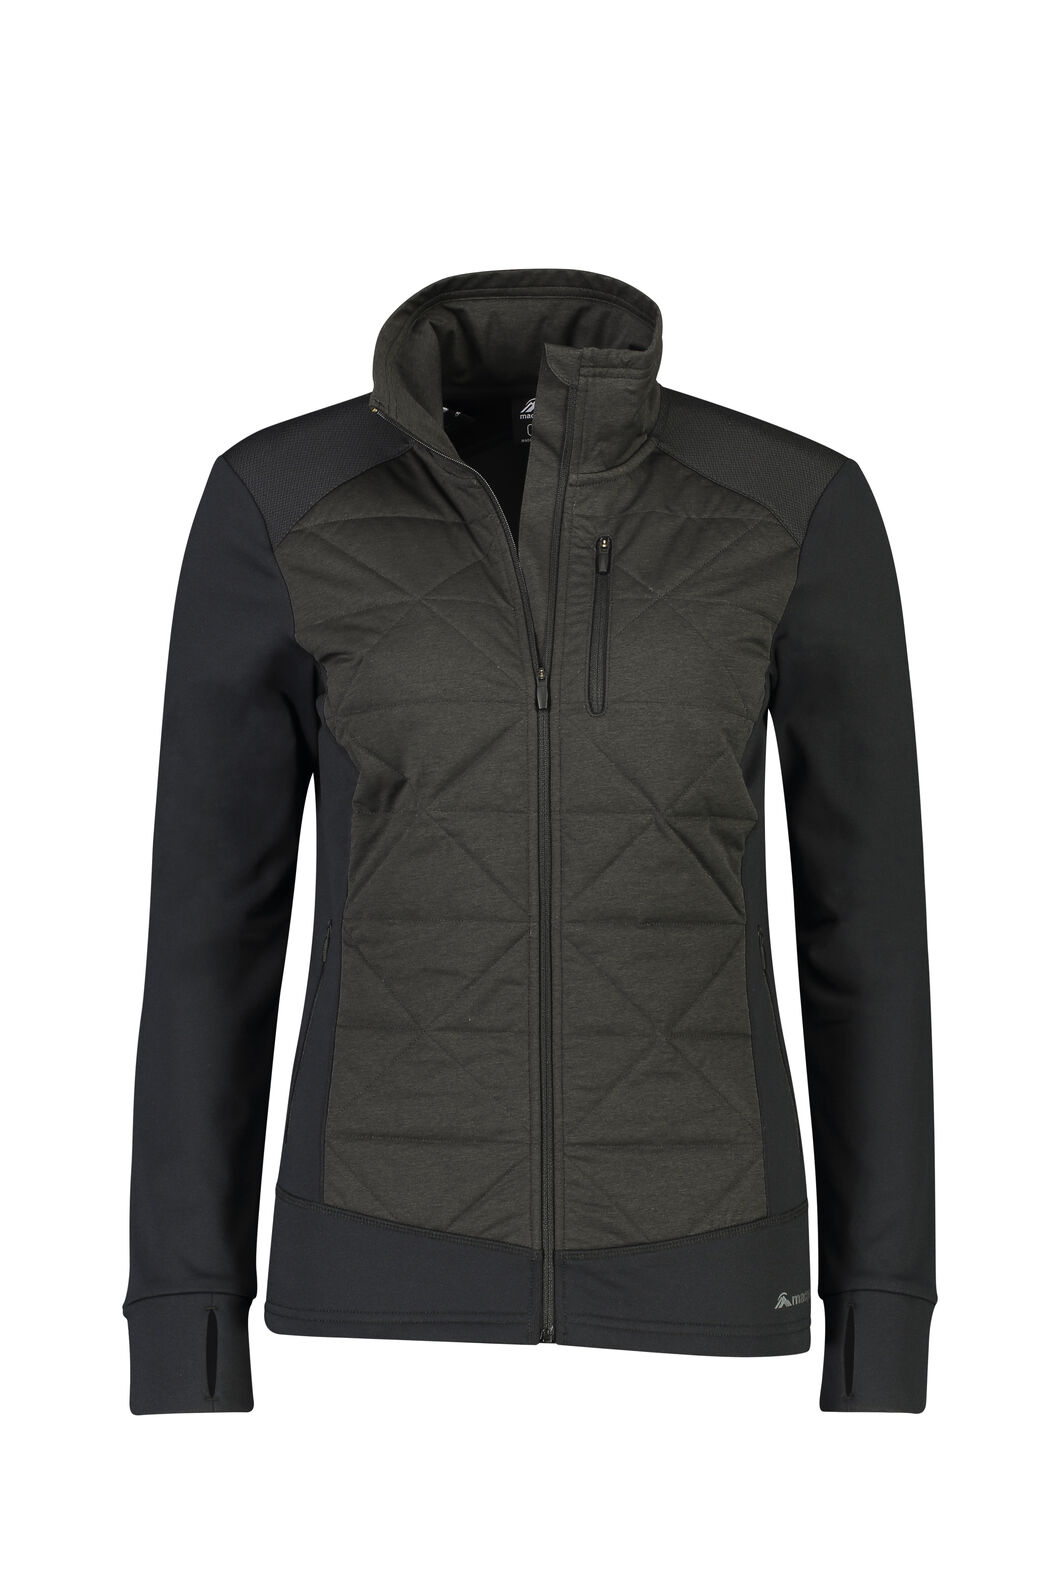 Macpac Accelerate PrimaLoft® Fleece Jacket — Women's, Black, hi-res